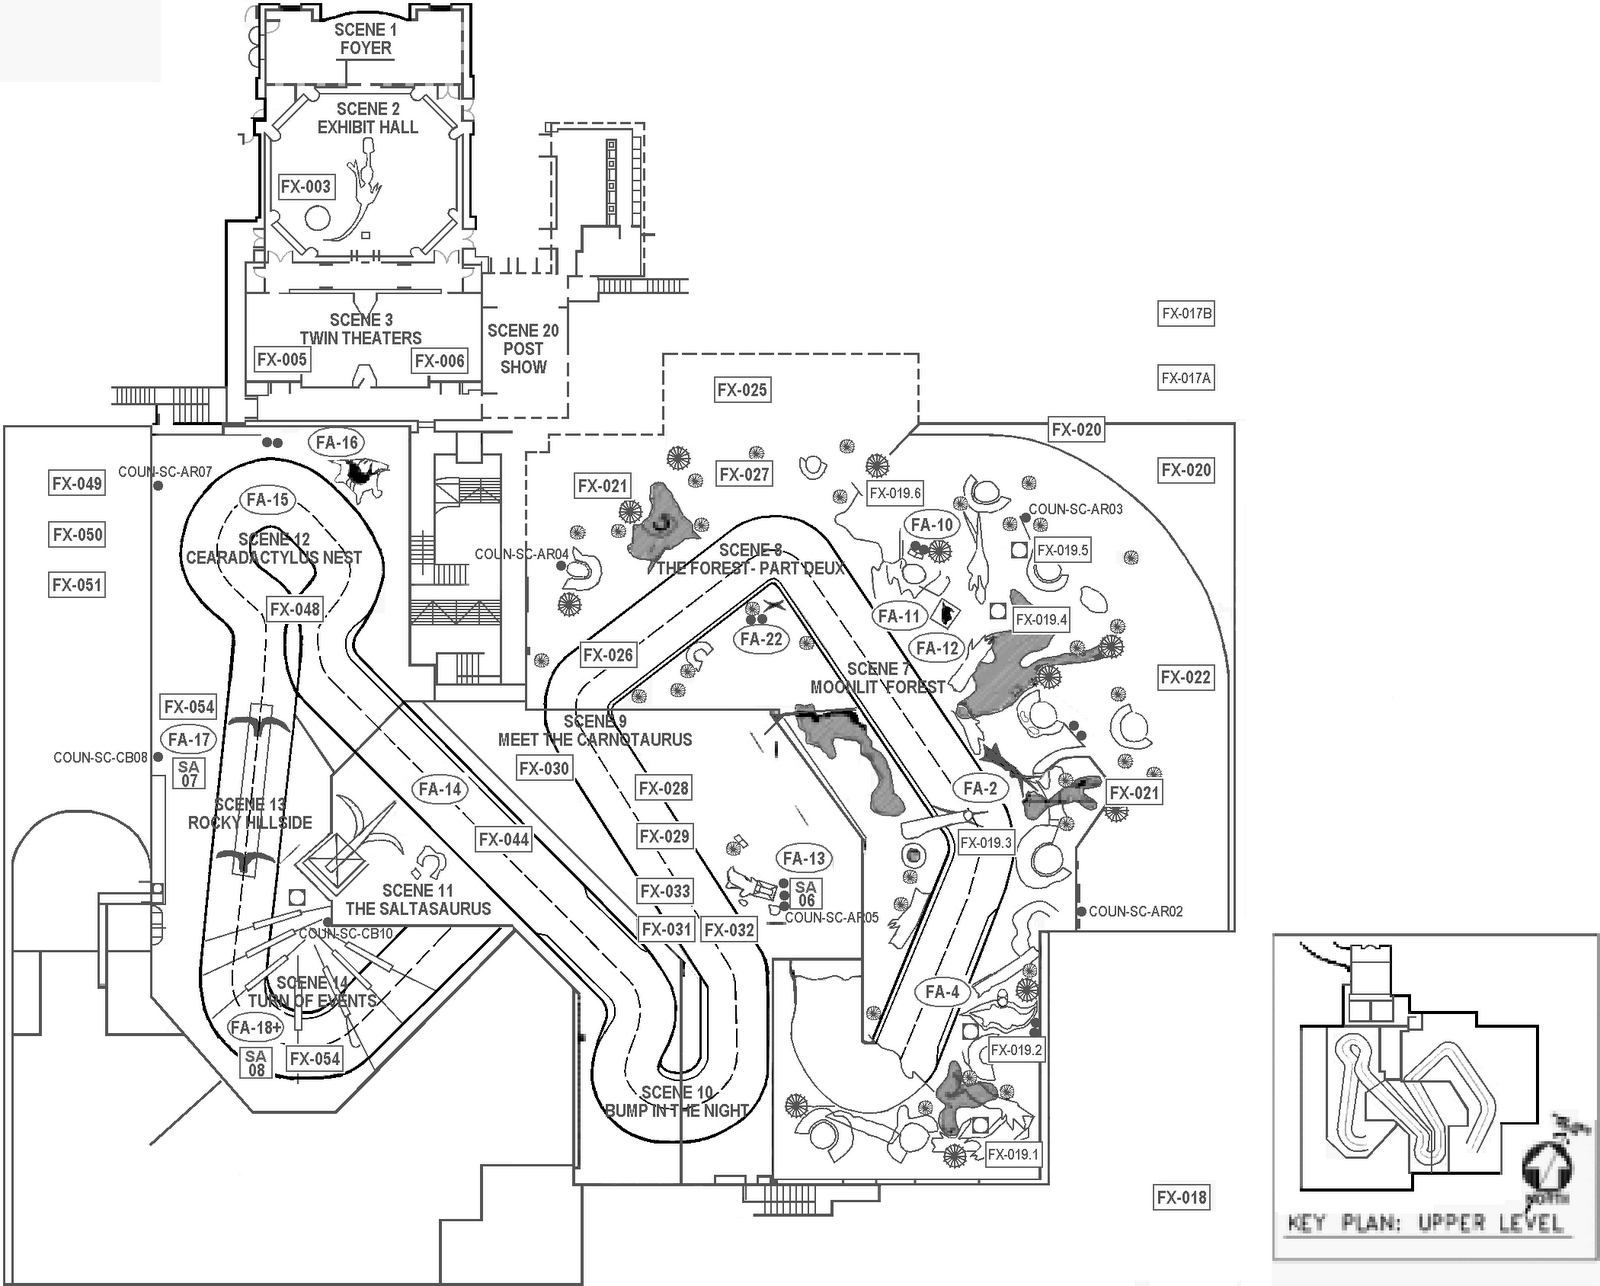 Amusement Authority Dinosaur Ride Layout